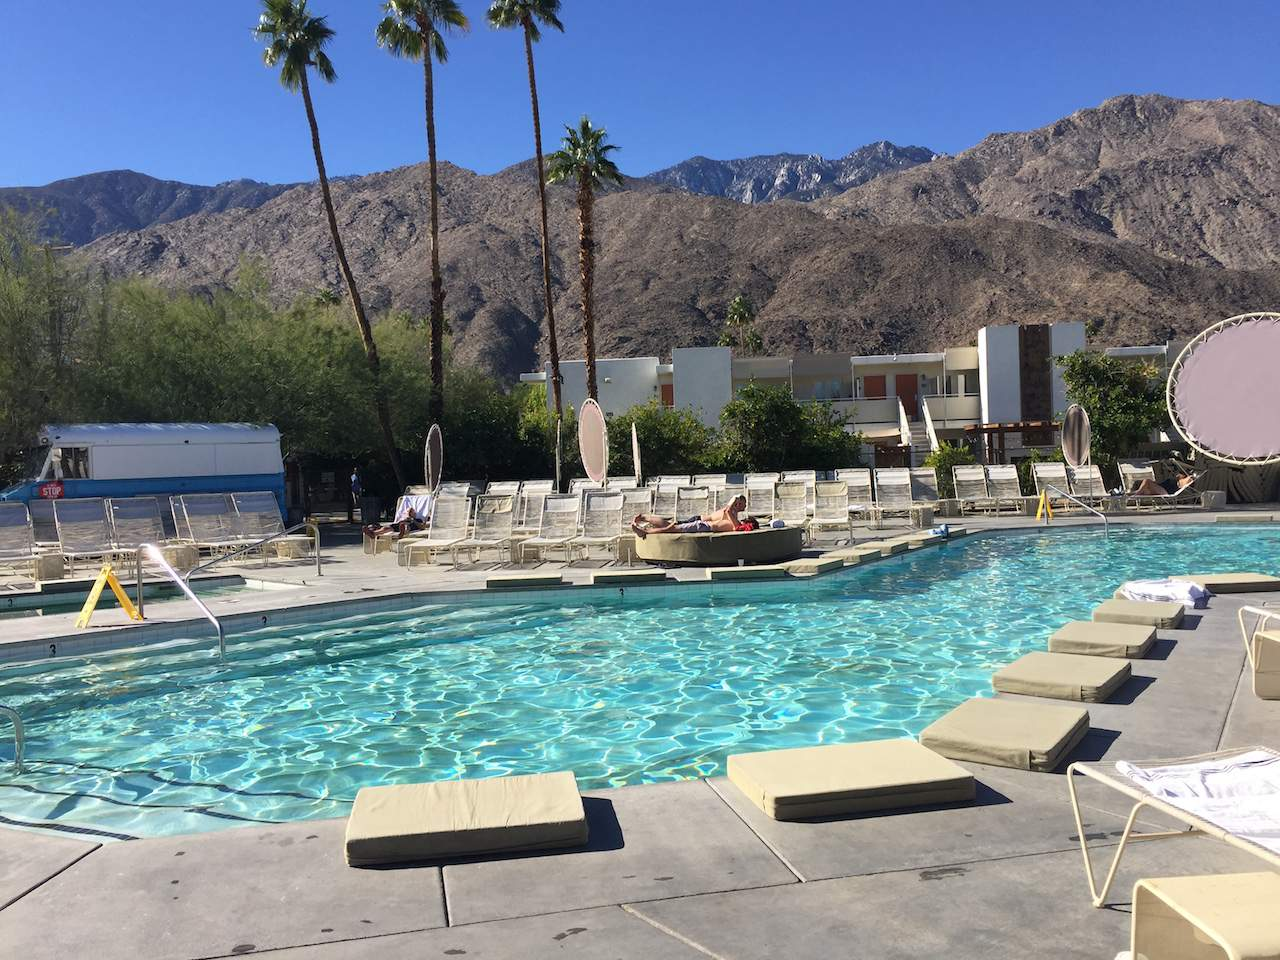 Ace Hotel, Palm Springs - pool